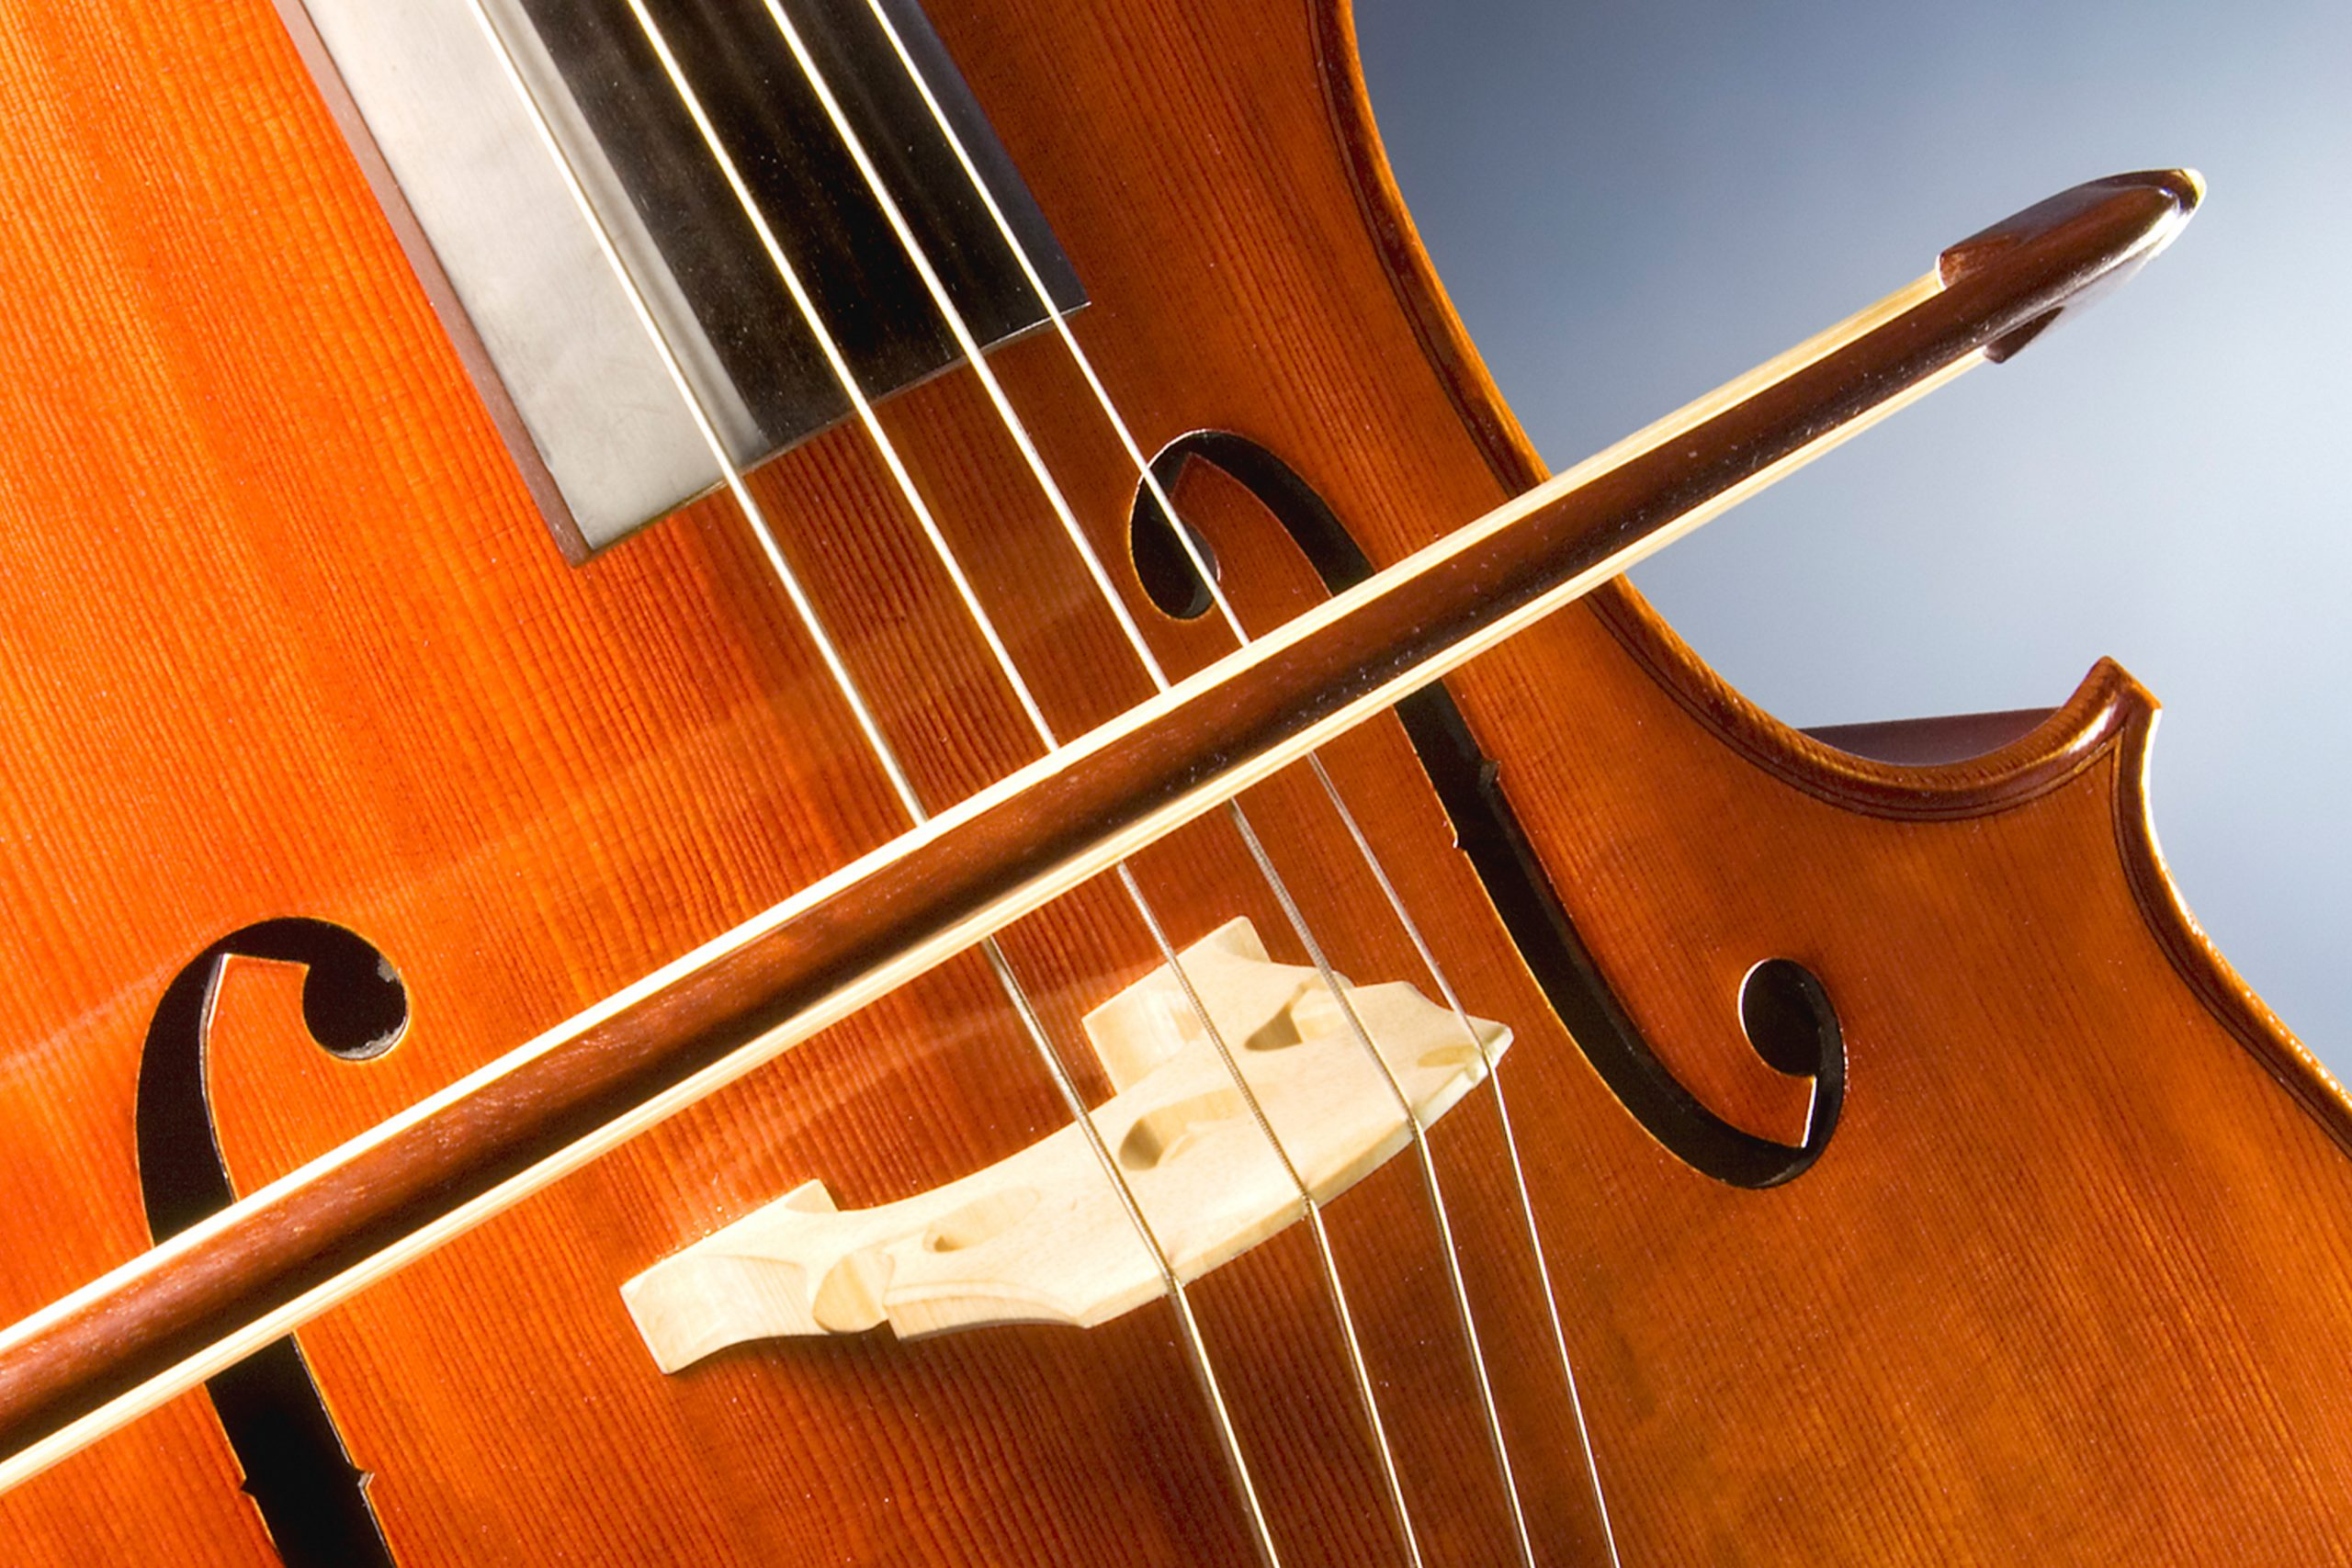 Violin Lessons in Bexley, Ohio 43209 Music Piano Violin Viola Bass Cello Strings Singing Voice Guitar Ukulele Brass Trumpet Euphonium Woodwinds Oboe Flute Saxophone Clarinet Drums Percussion Lessons Classes Teachers Instructors Online Virtual Columbus, OH Bexley, OH